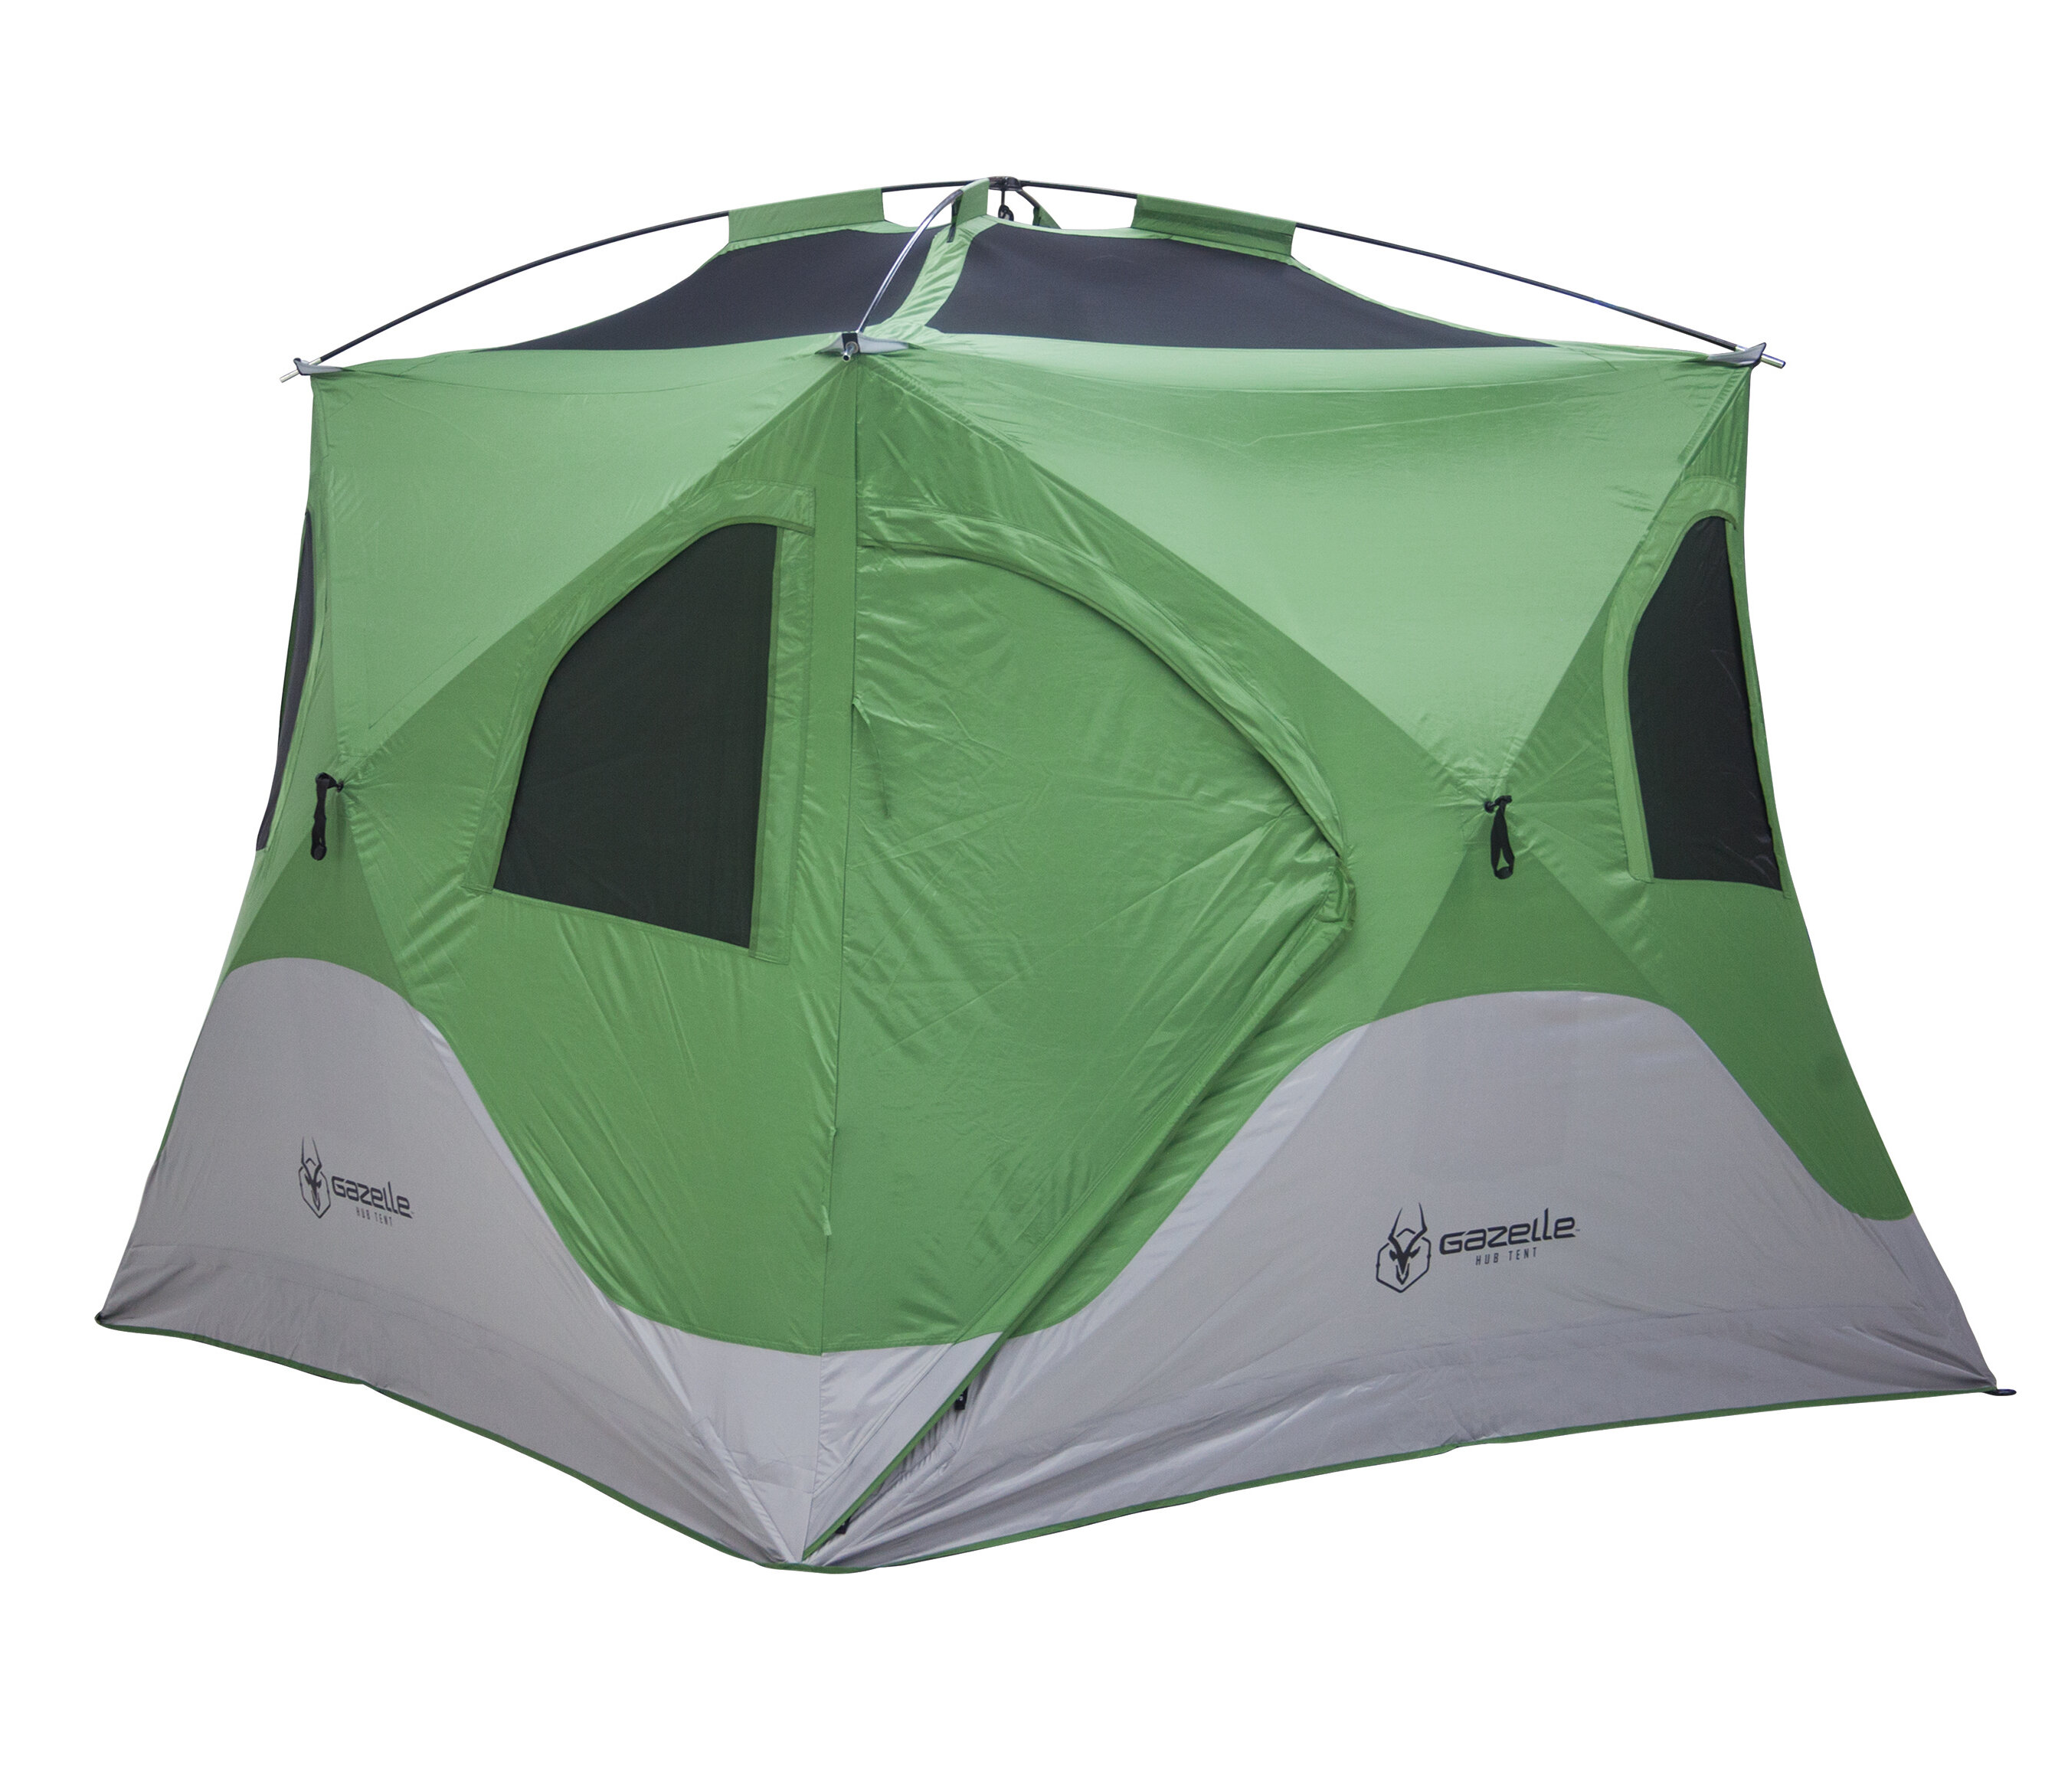 Gazelle Pop Up Portable Camping Hub 3 Person Tent Wayfair